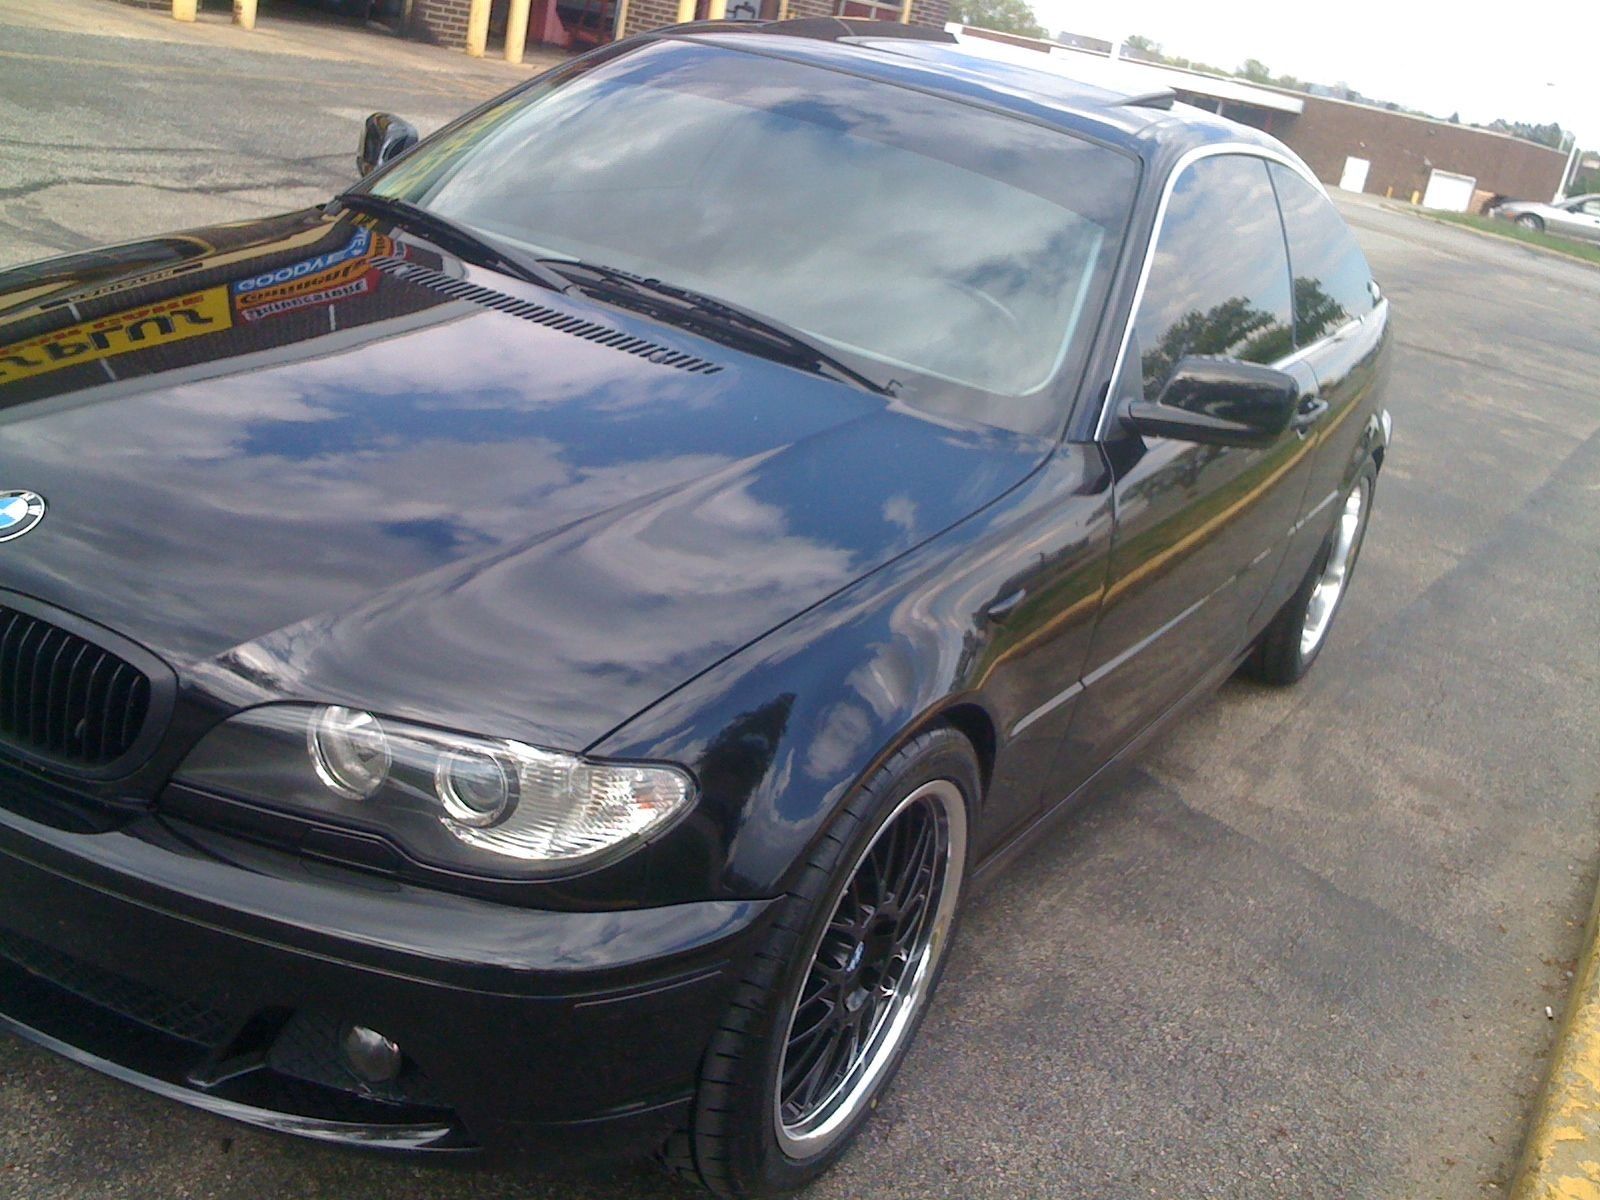 2004 bmw 330 ci coupe for sale seymour indiana. Black Bedroom Furniture Sets. Home Design Ideas